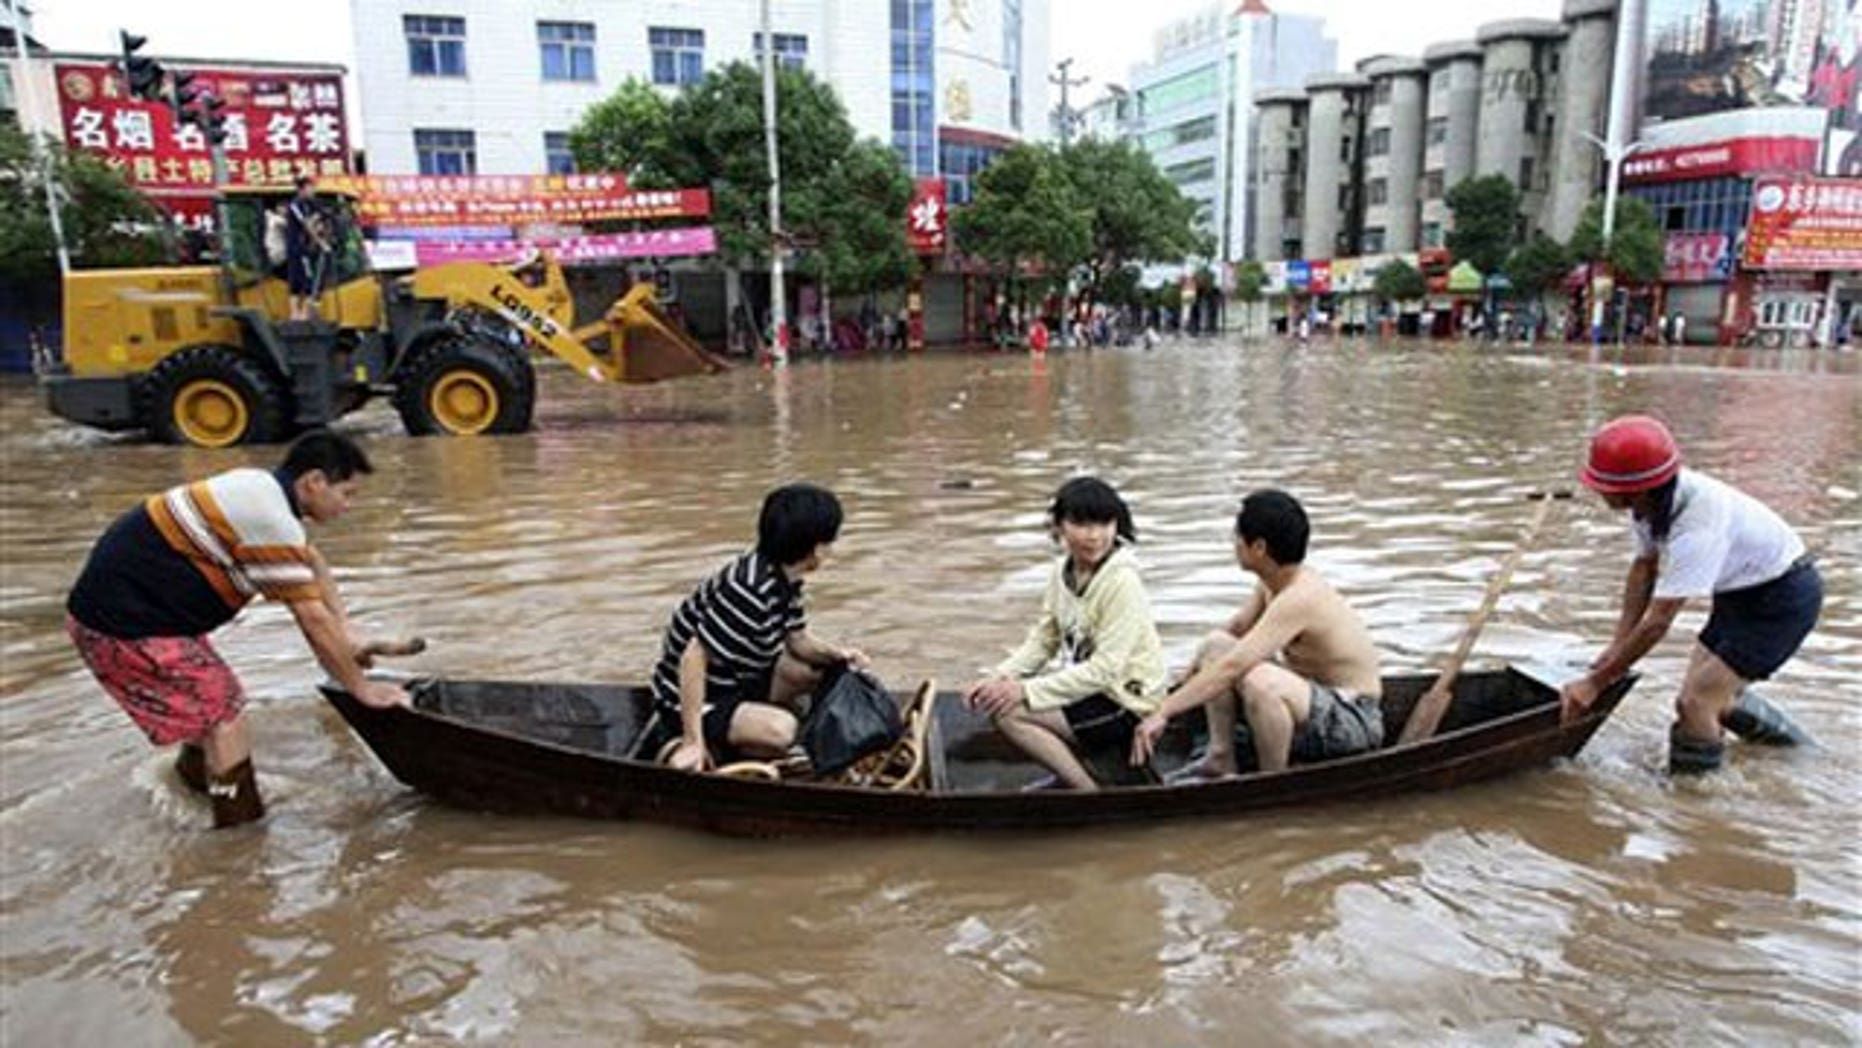 June 20: Chinese residents cross a flooded street with the help of a wooden boat in Dongxiang county in China's Jiangxi province.